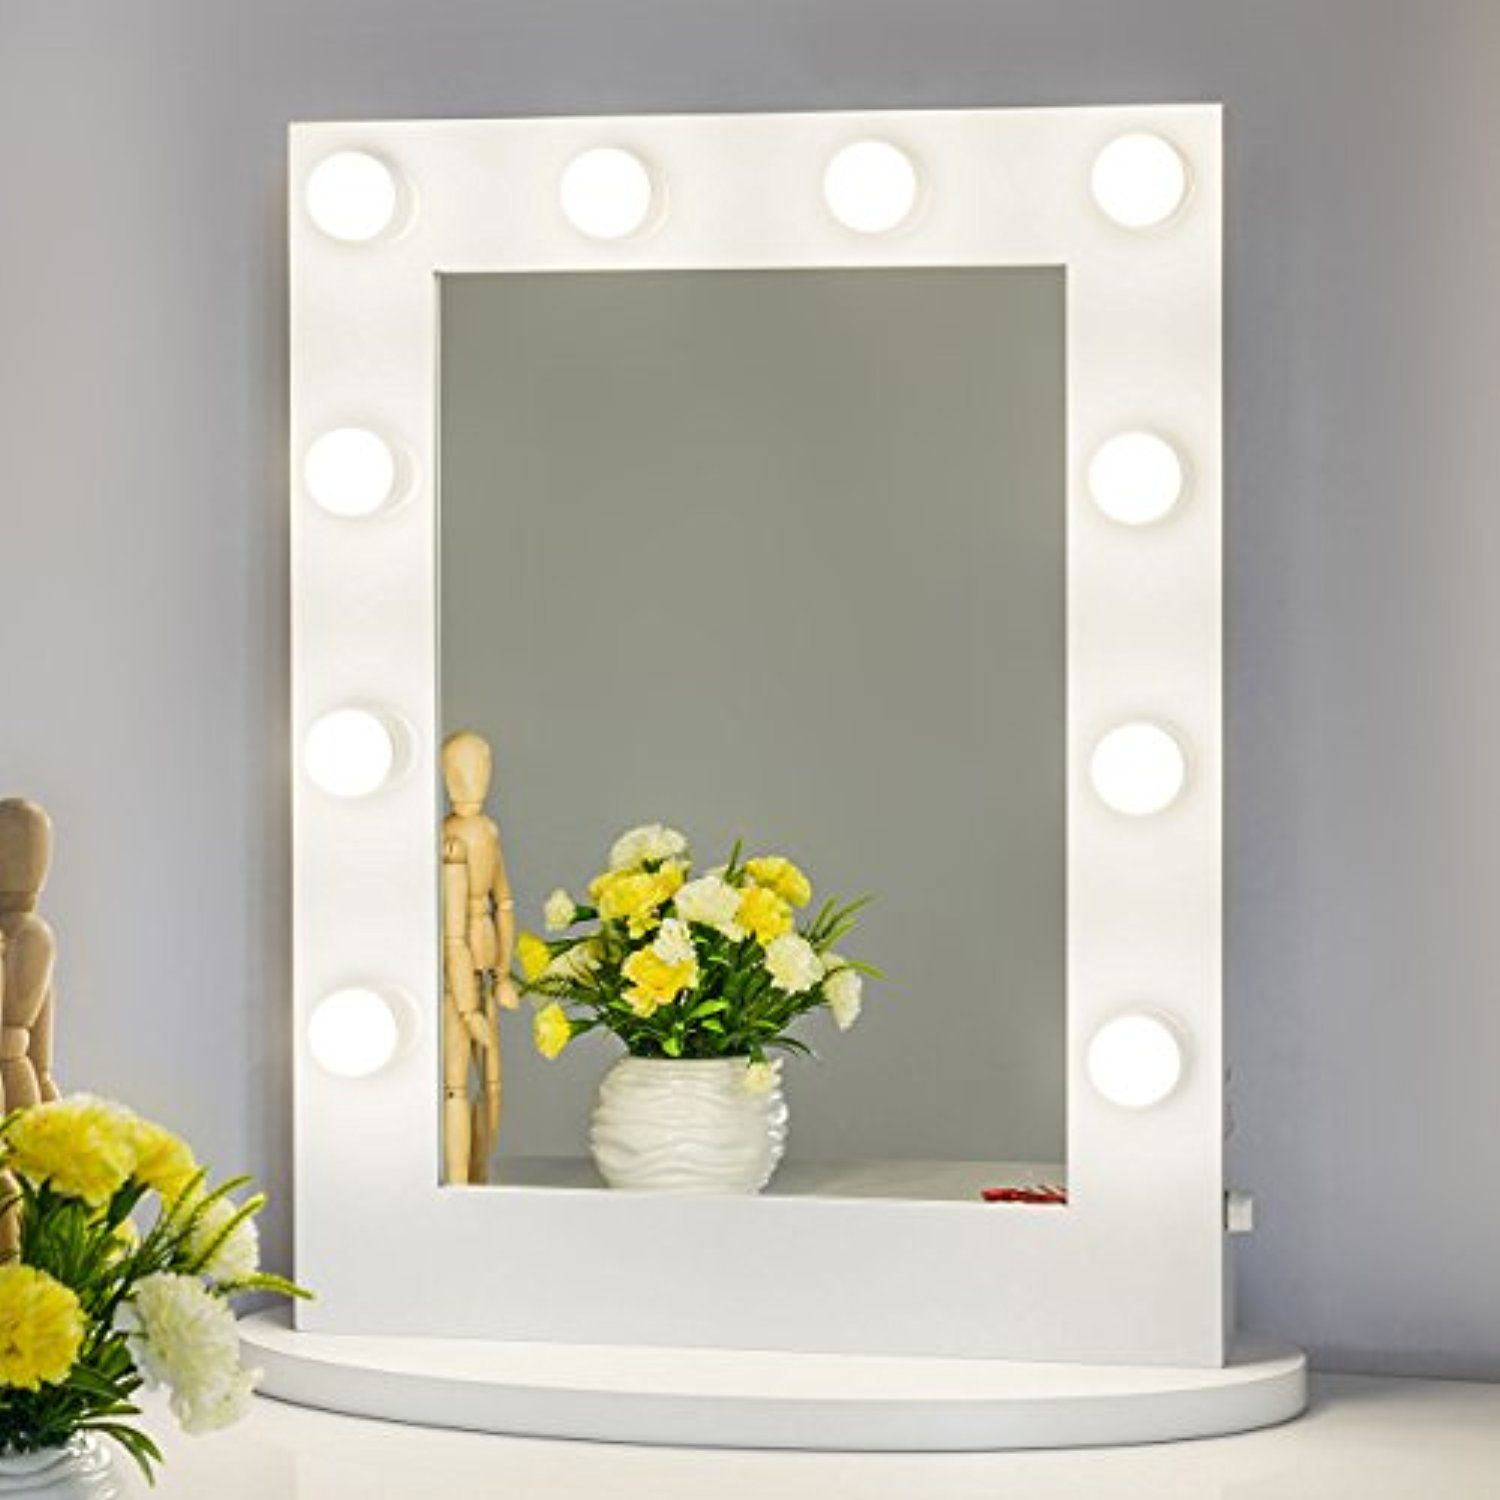 Chende SUMMER SALEï¼ ï¼ ï¼ Vanity Mirror with Light Hollywood Makeup ...